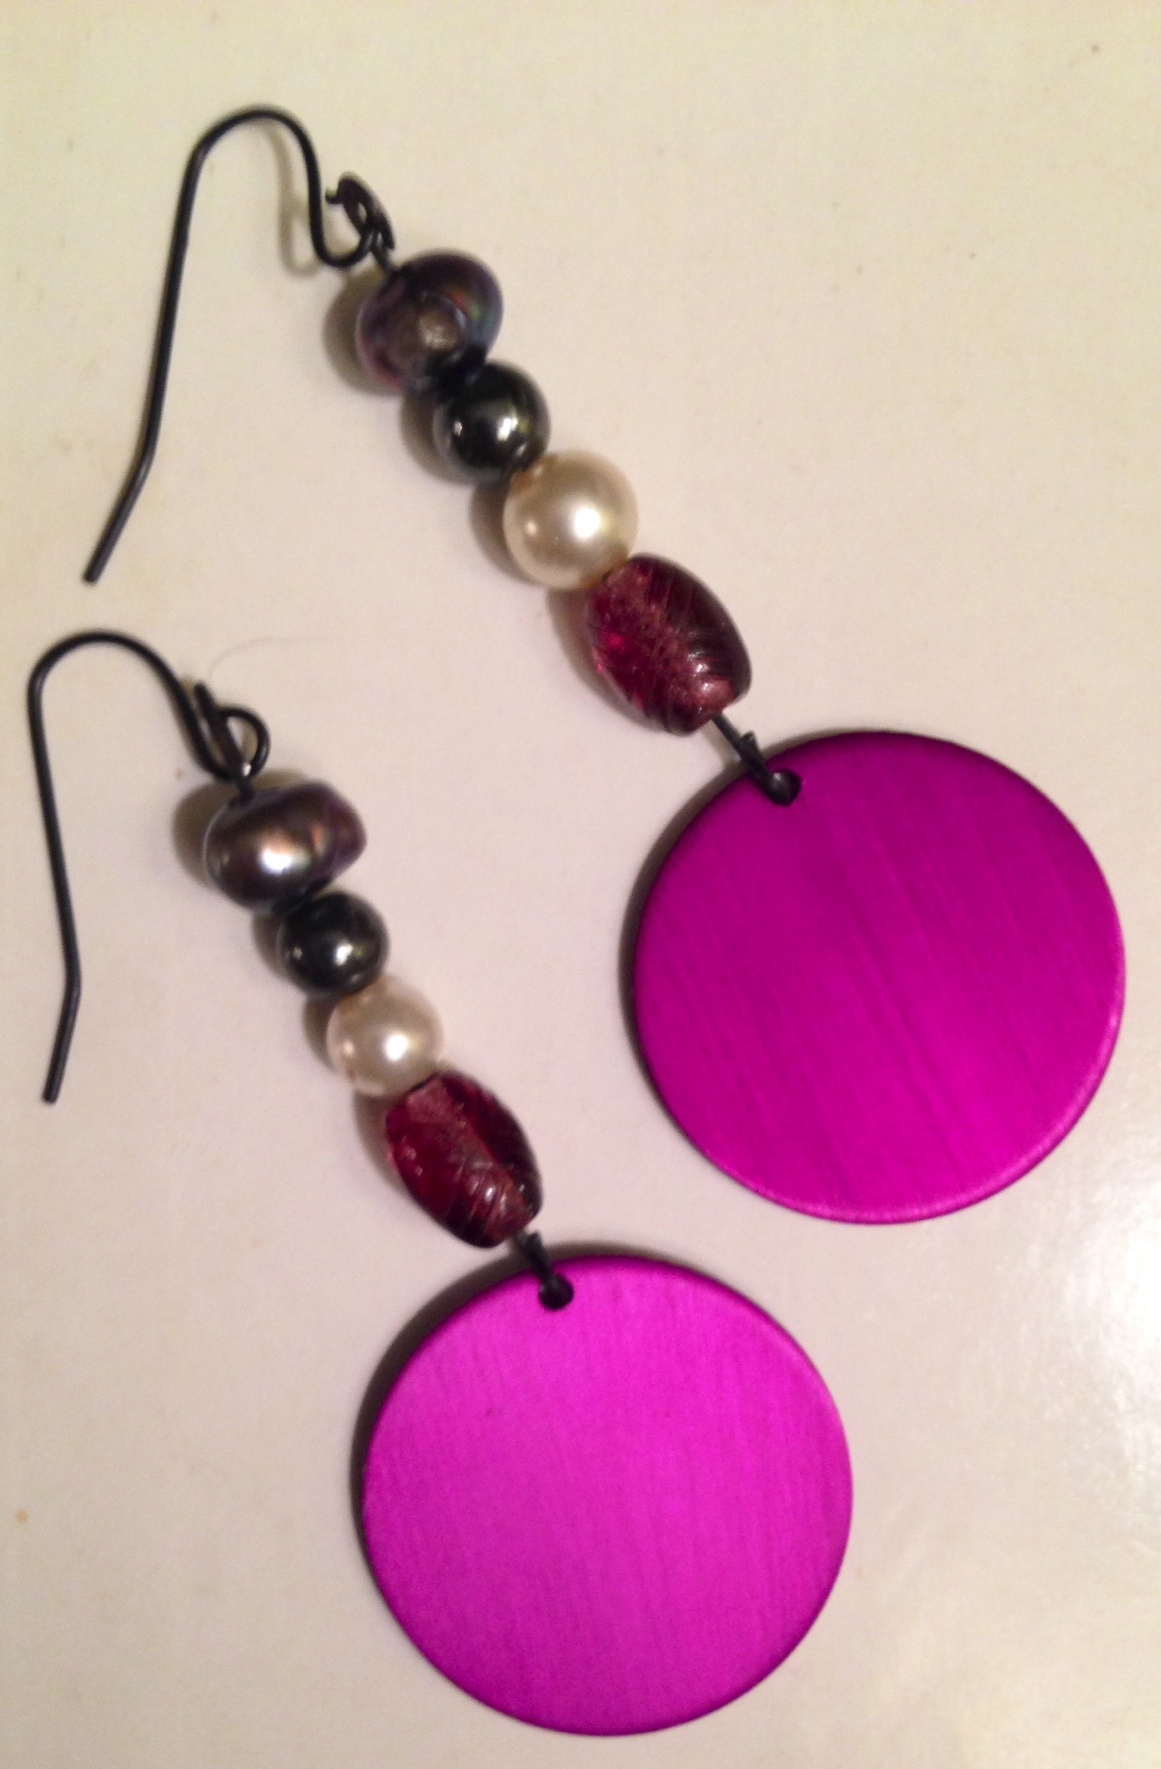 NEW! ENERGY DISK EARRINGS w/PEARLS, HEMATITE, GLASS BEADS